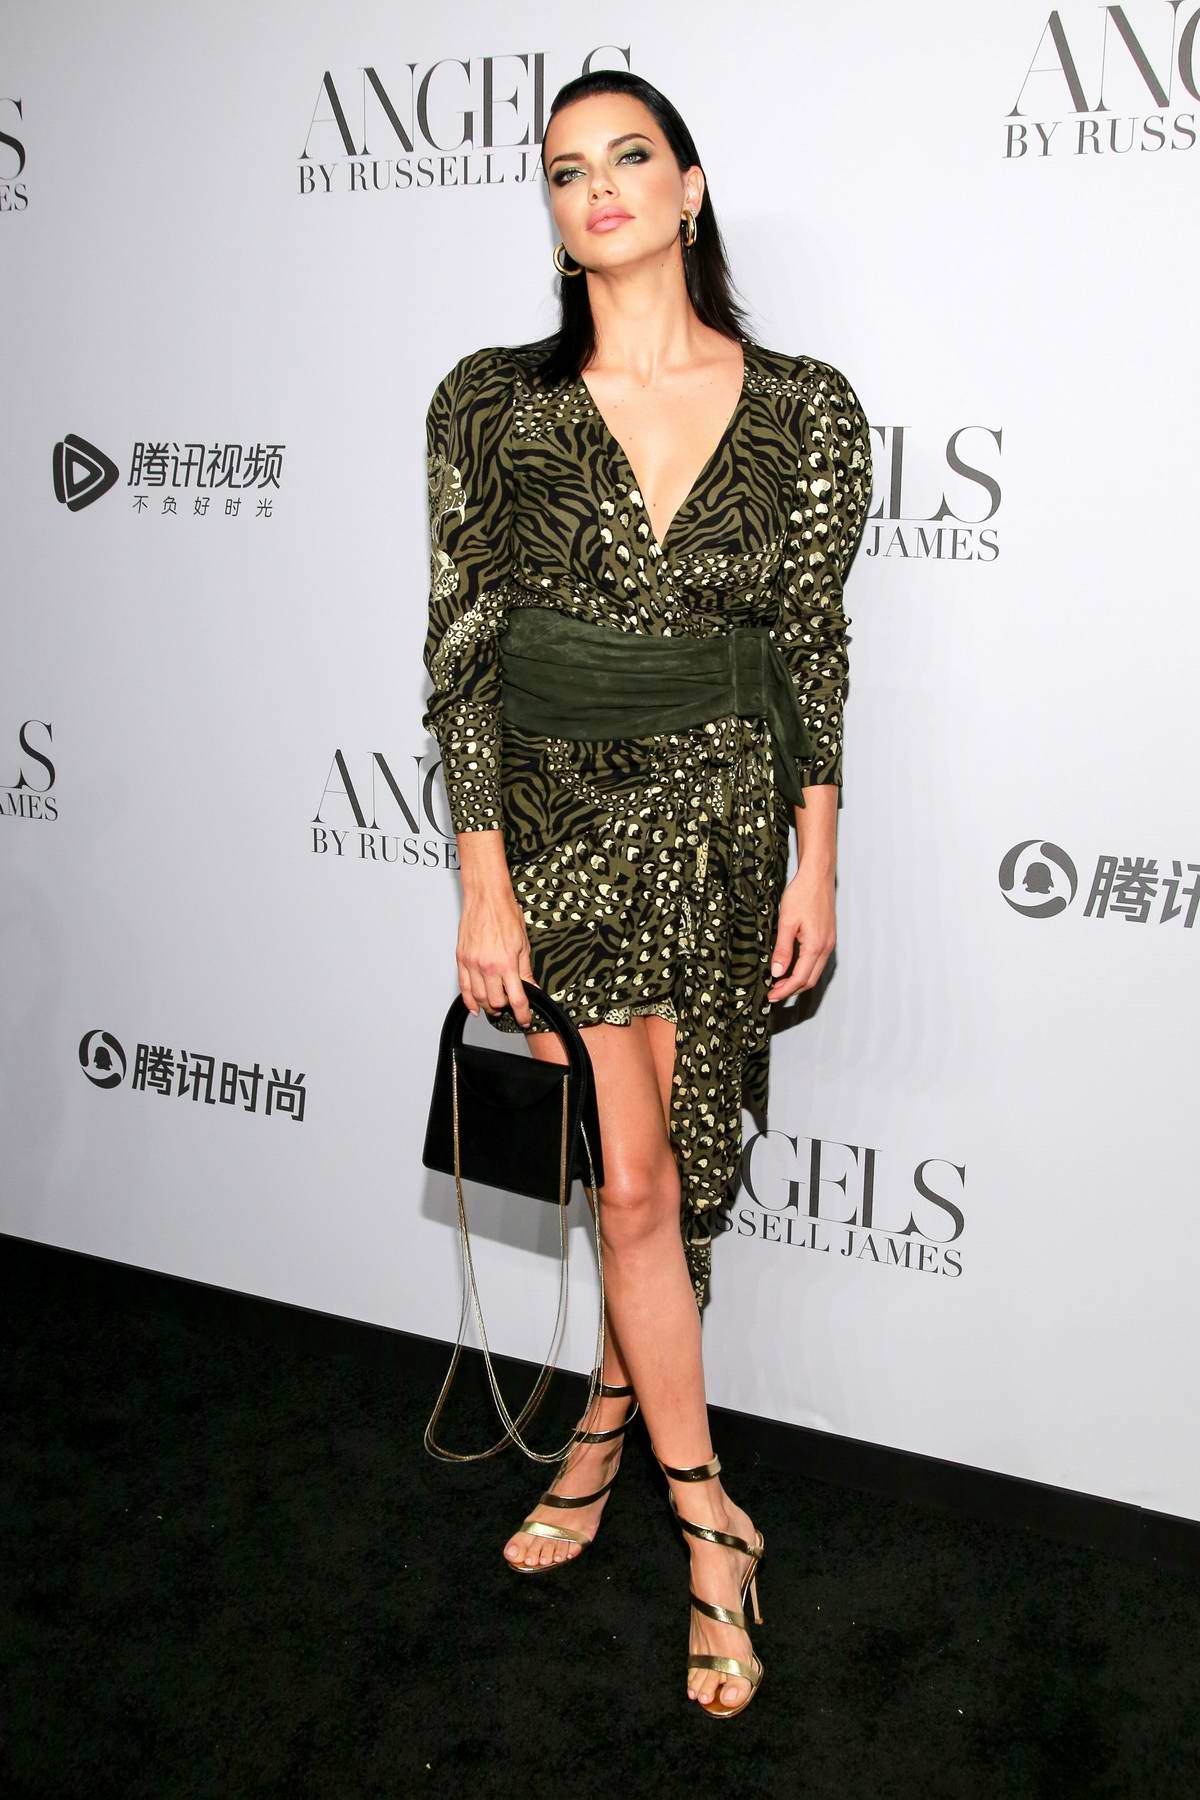 eb6231d67530c Adriana Lima attends  ANGELS  by Russell James Book Launch And Exhibit in  New York City